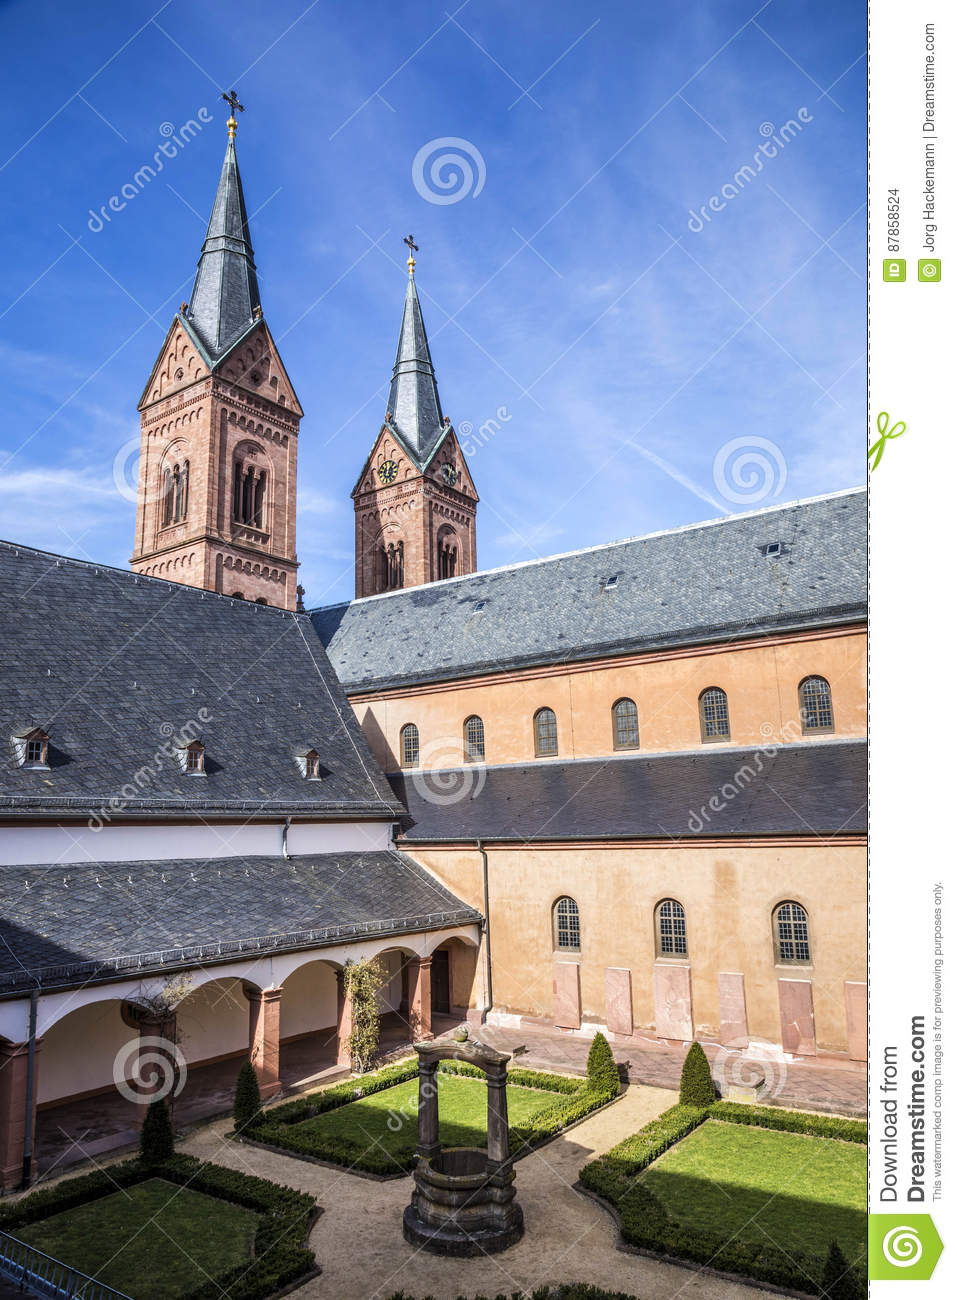 Famous benedictine cloister in Seligenstadt, Germany